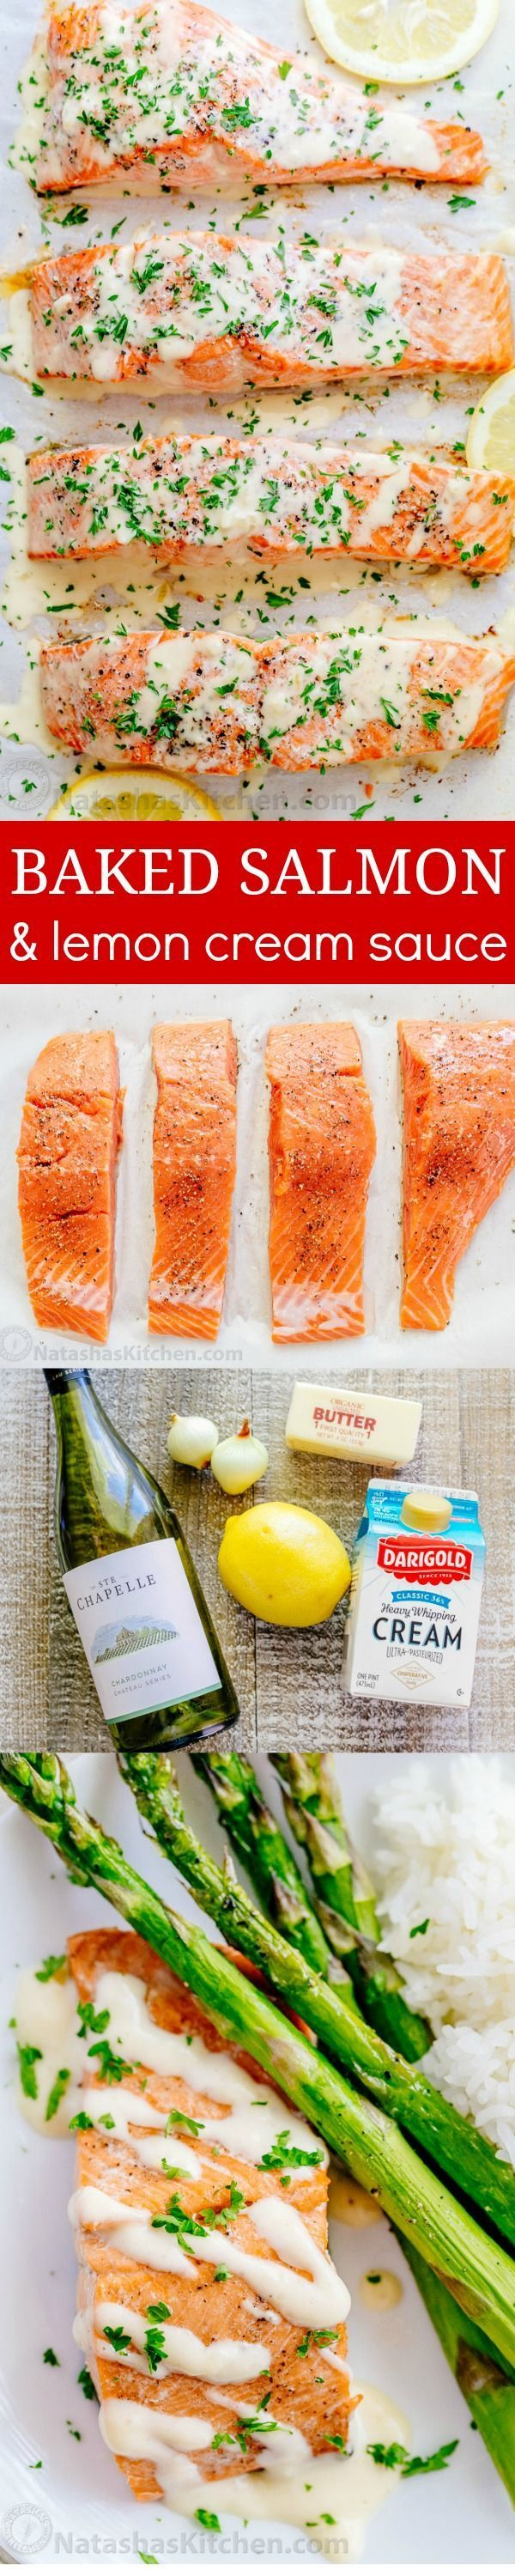 Oven Baked Salmon with flavorful and simple lemon cream sauce. Lemon beurre blanc, will be your secret weapon for seafood recipes. Gourmet flavors at home! | http://natashaskitchen.com